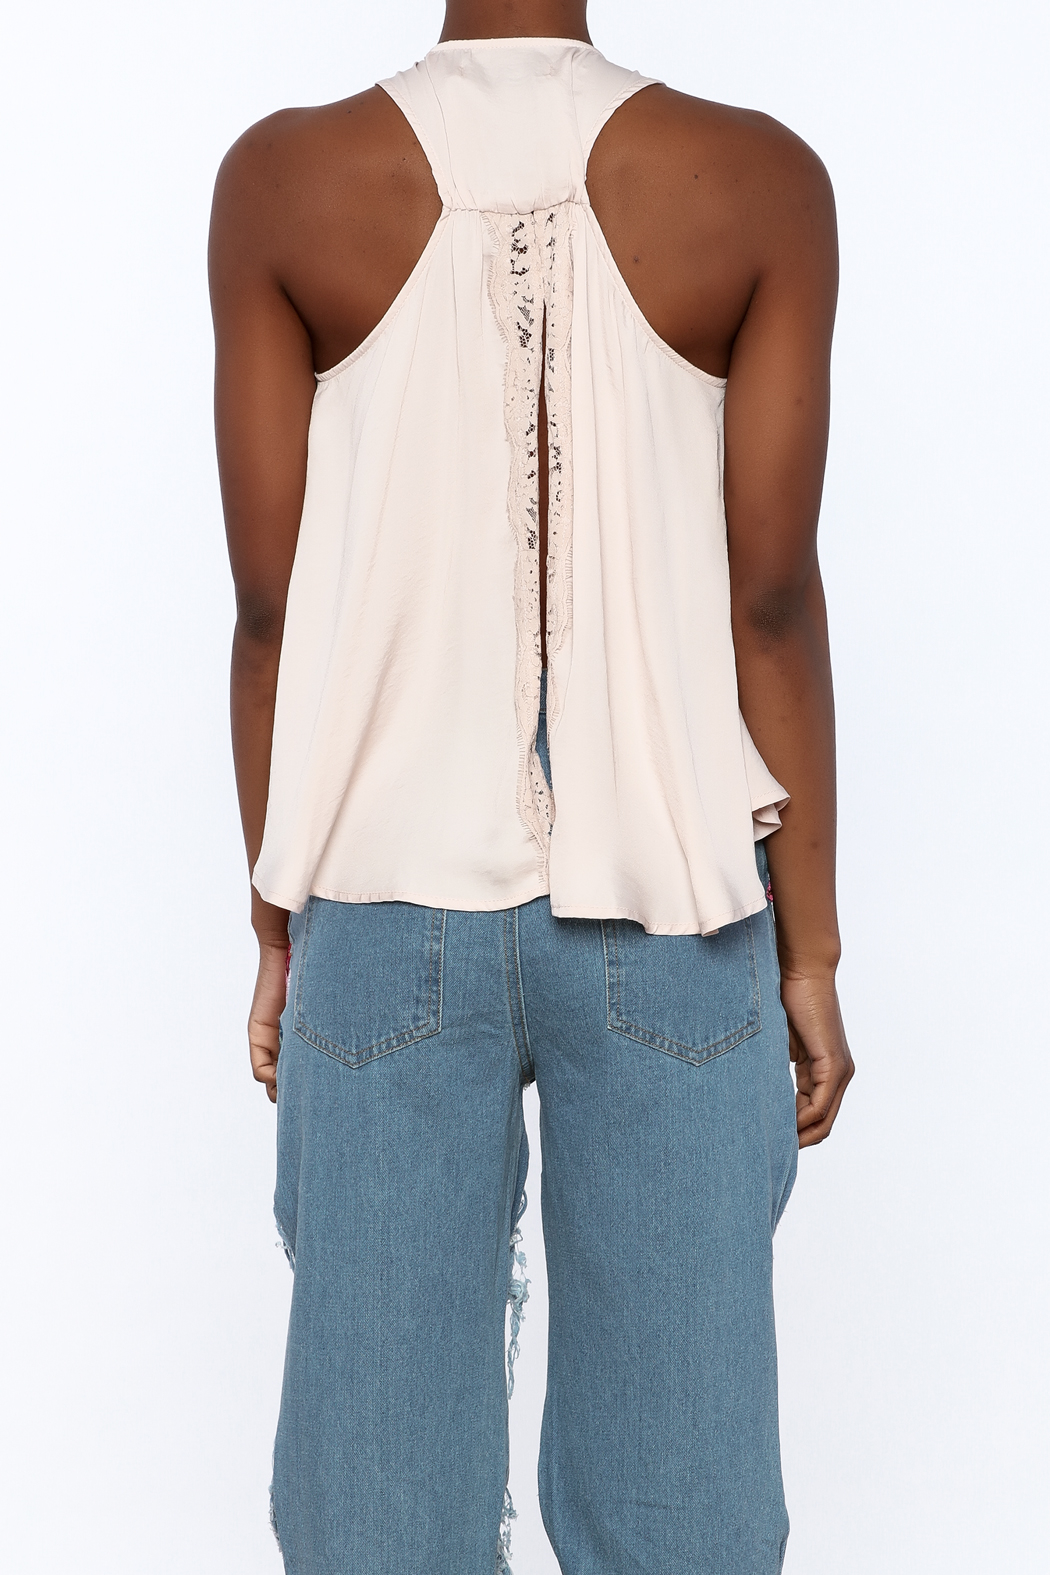 Do & Be Blush Racer Back Top - Back Cropped Image